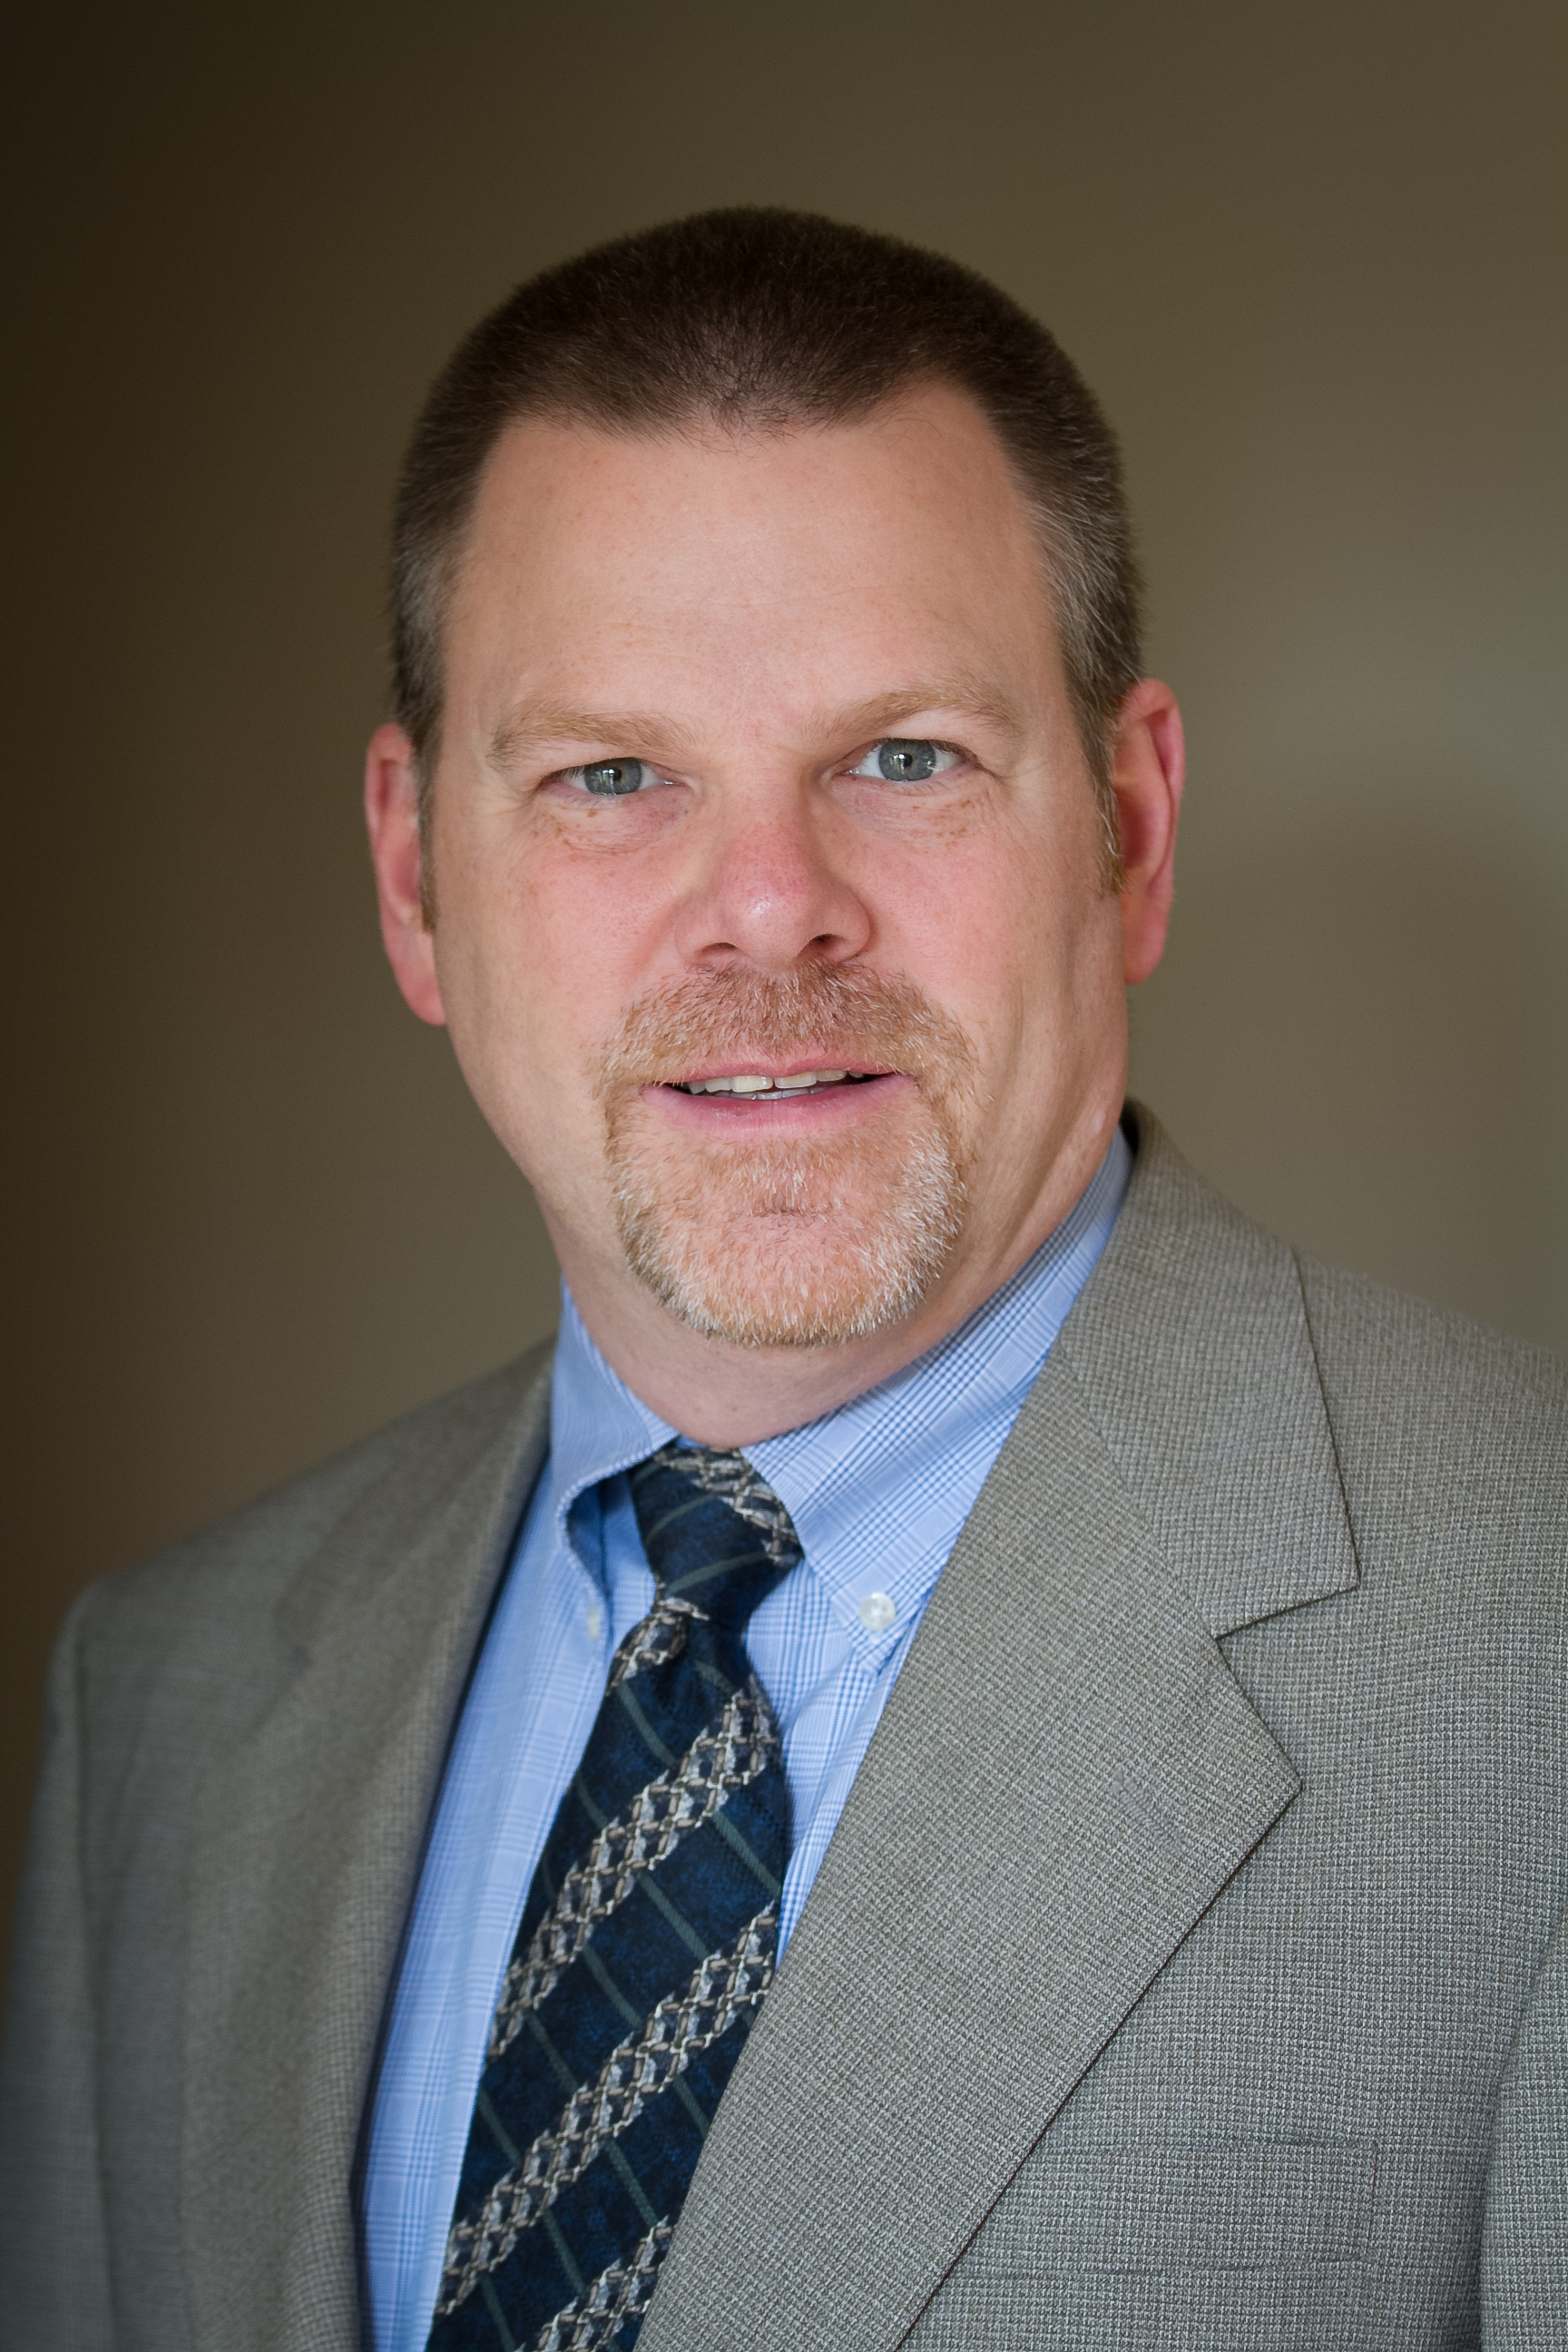 Dr Tim Black R Psych Joins Wounded Warriors: Dr. Tim Clydesdale, Professor Of Sociology